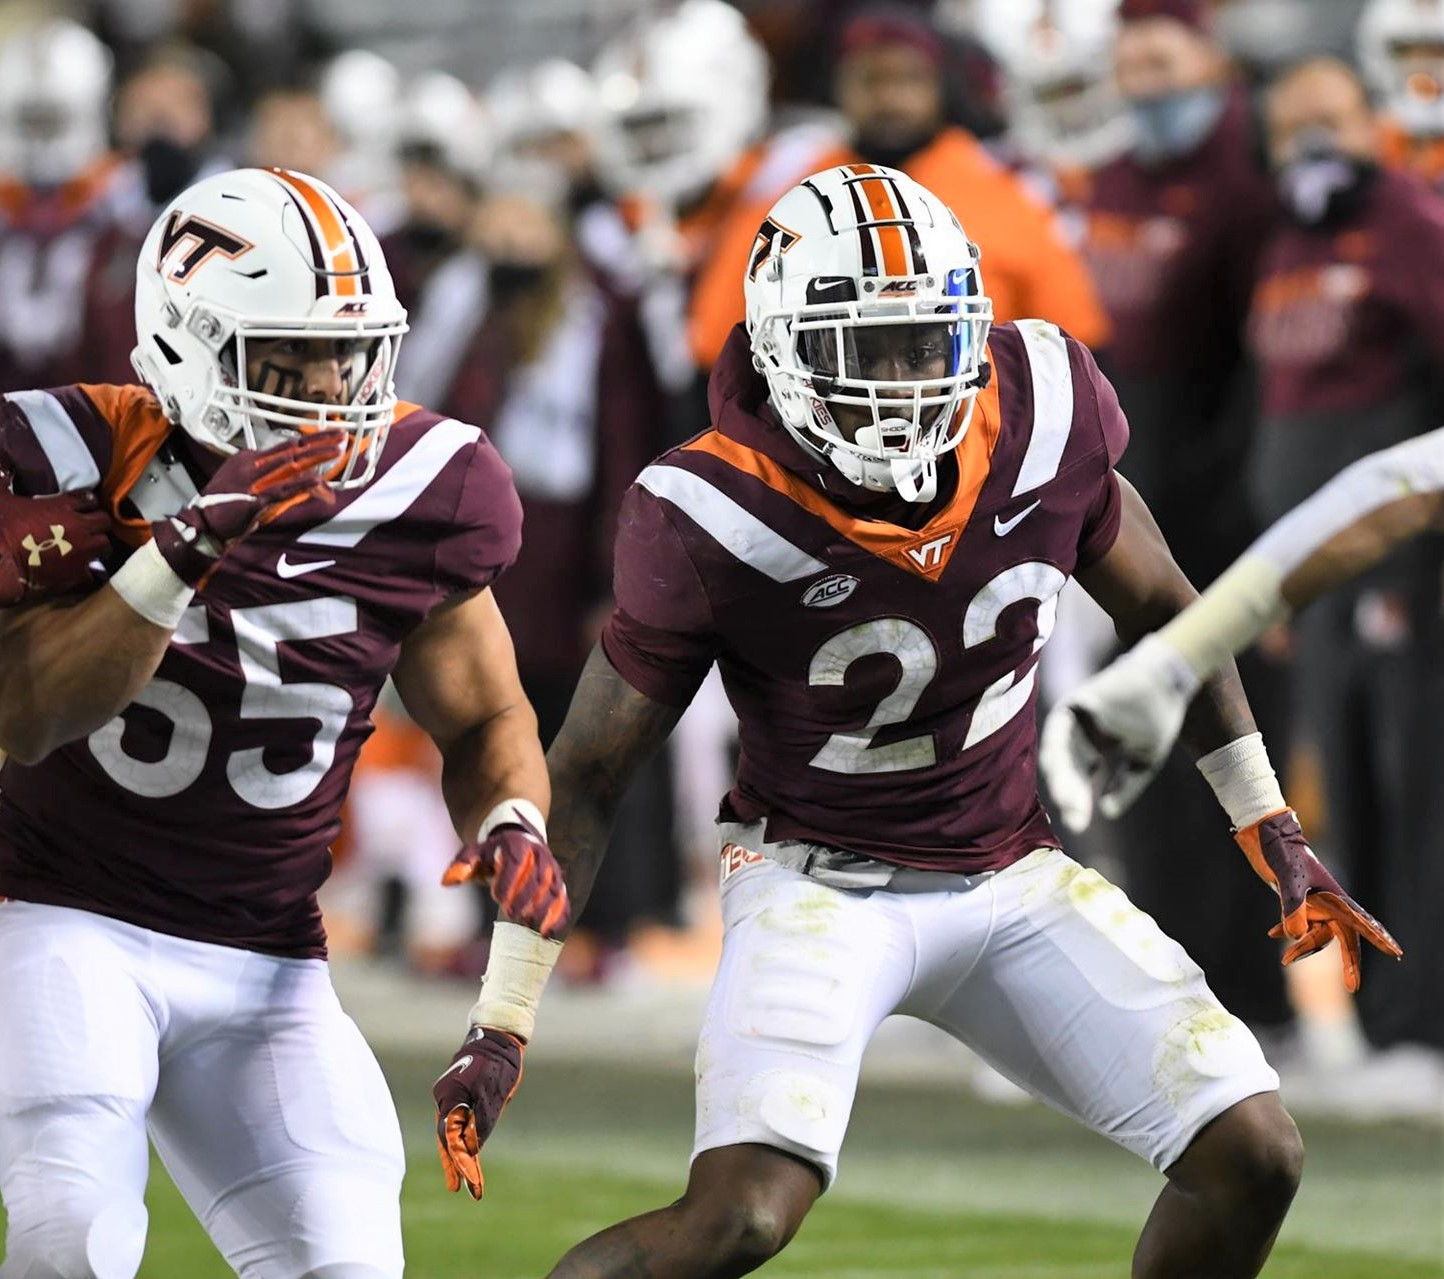 DB Conner, OL Nester earn ACC Player of the Week honors